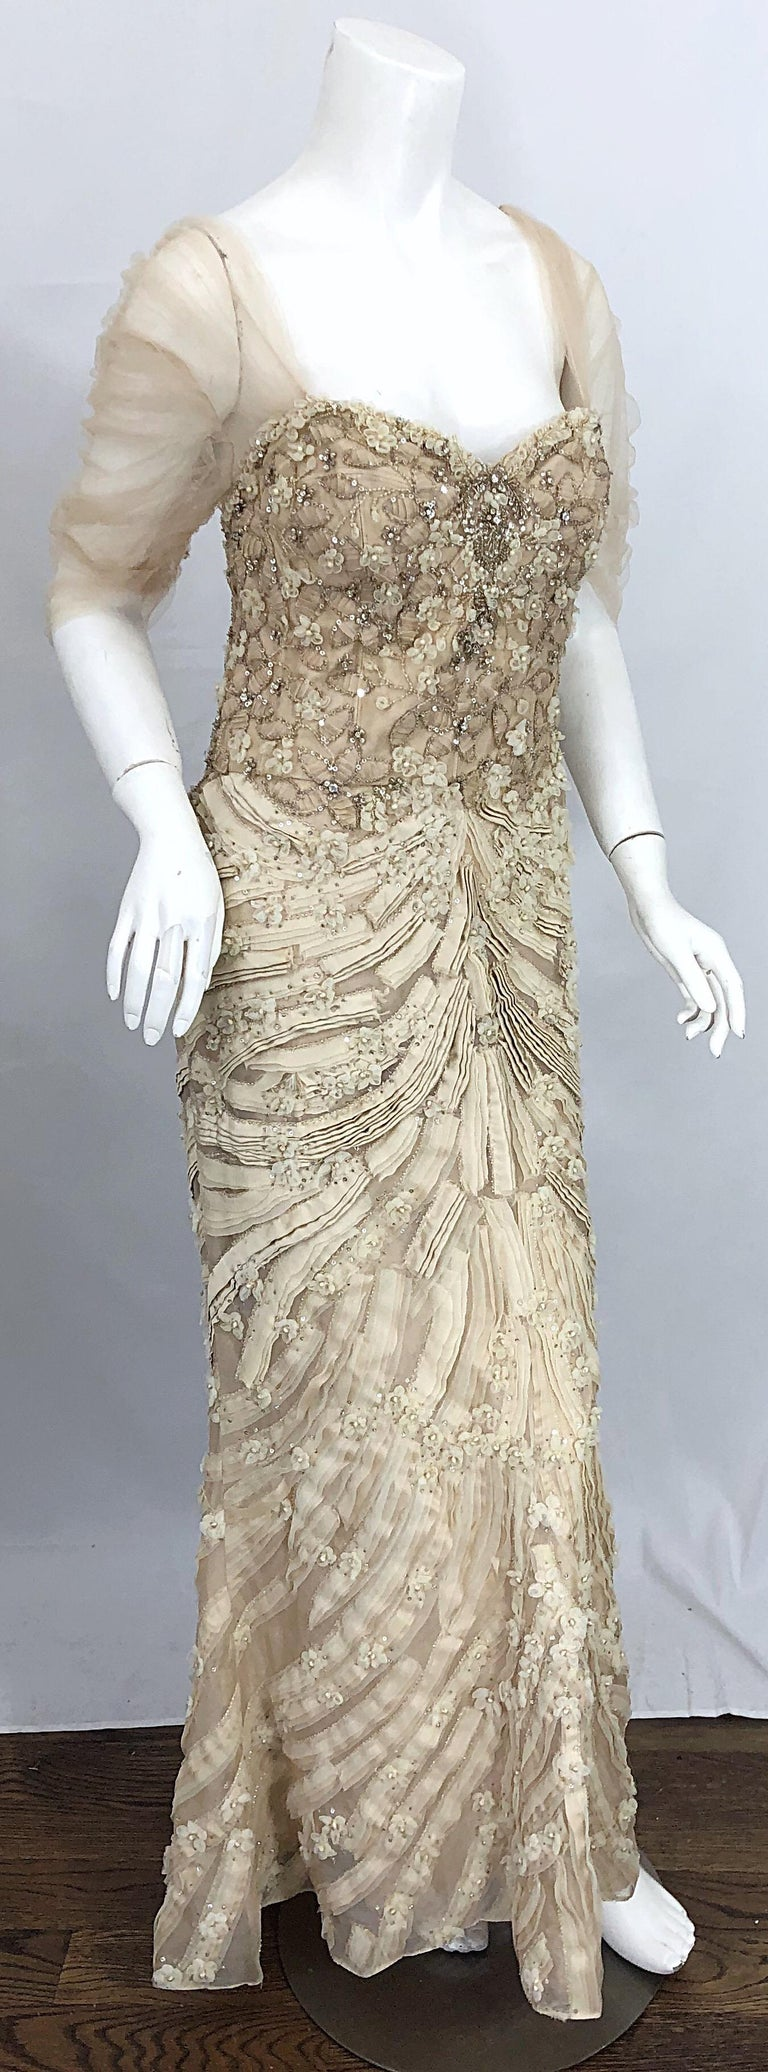 Monique Lhuillier Couture Size 10 / 12 Beige Rhinestone Beaded $12,000 Silk Gown For Sale 6